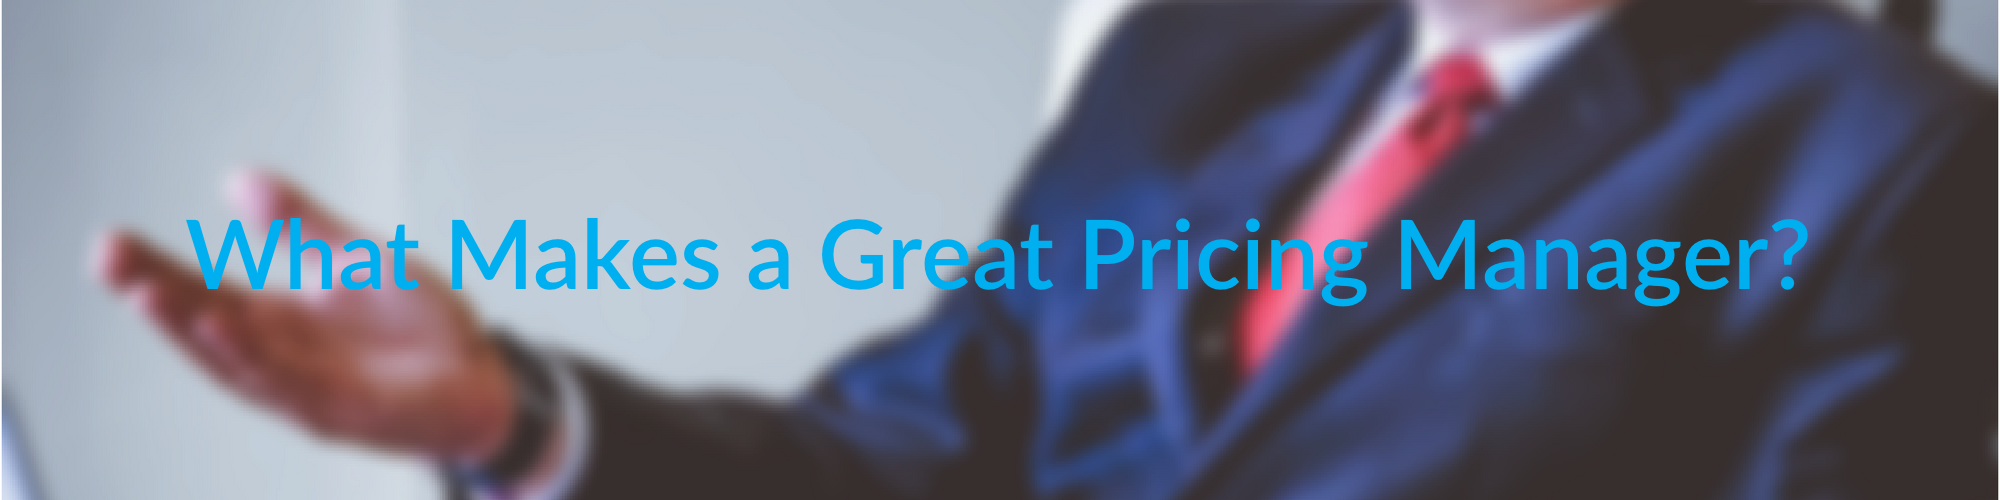 What Makes a Great Pricing Manager?.png